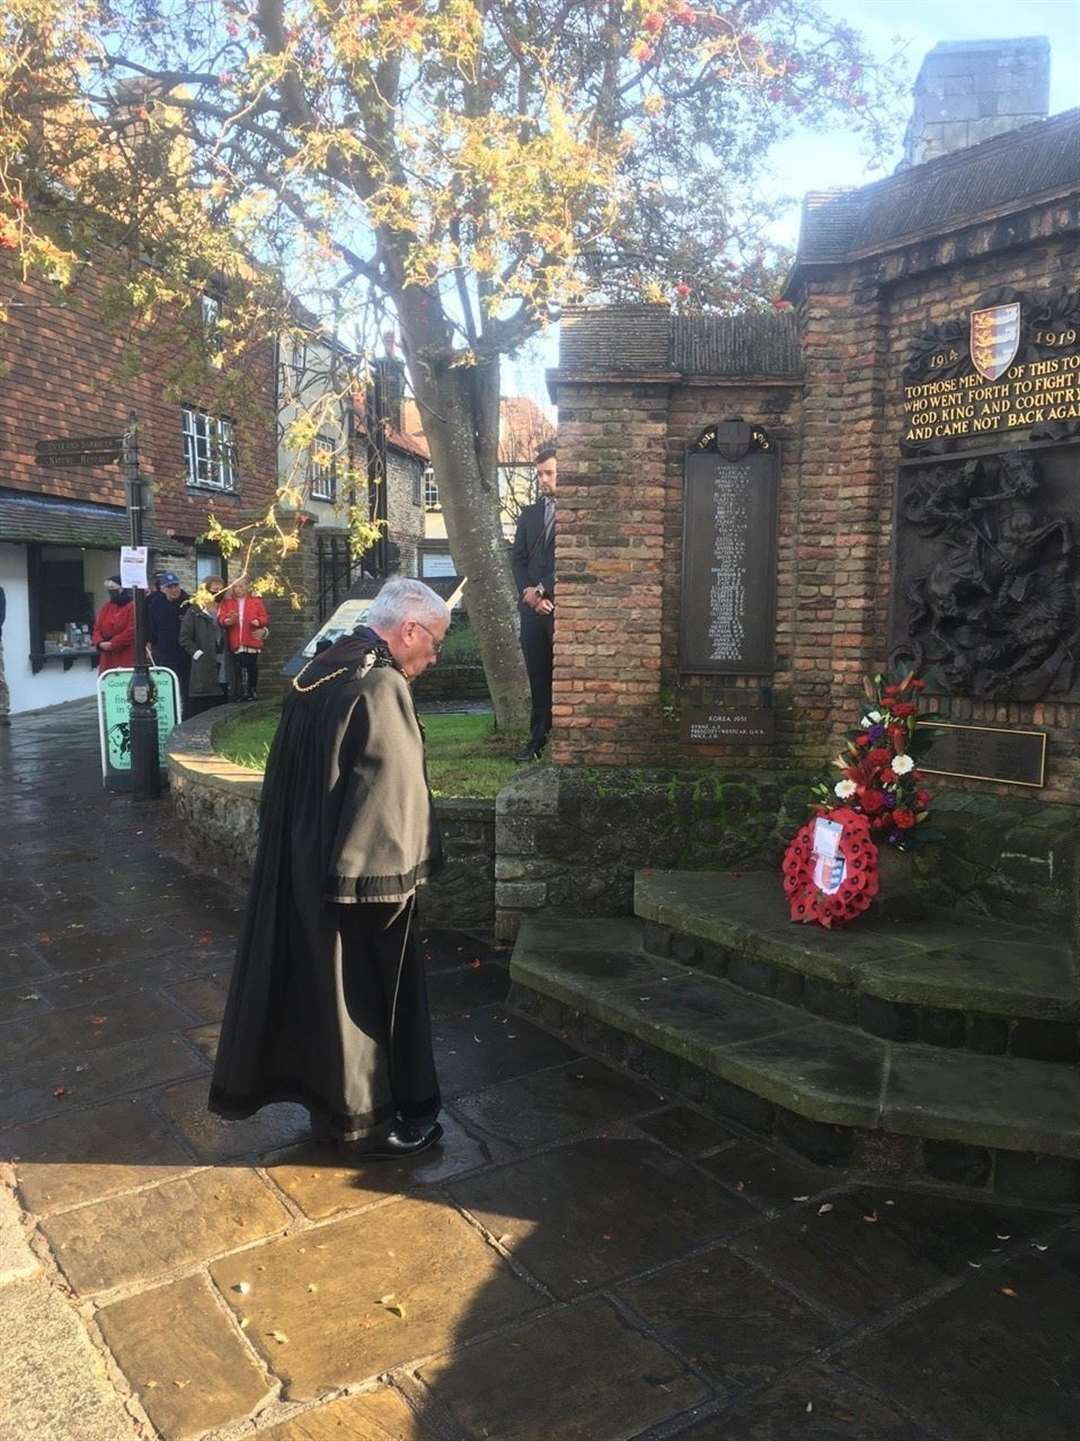 The Mayor of Sandwich Cllr Paul Graeme laid a wreath on behalf of the town